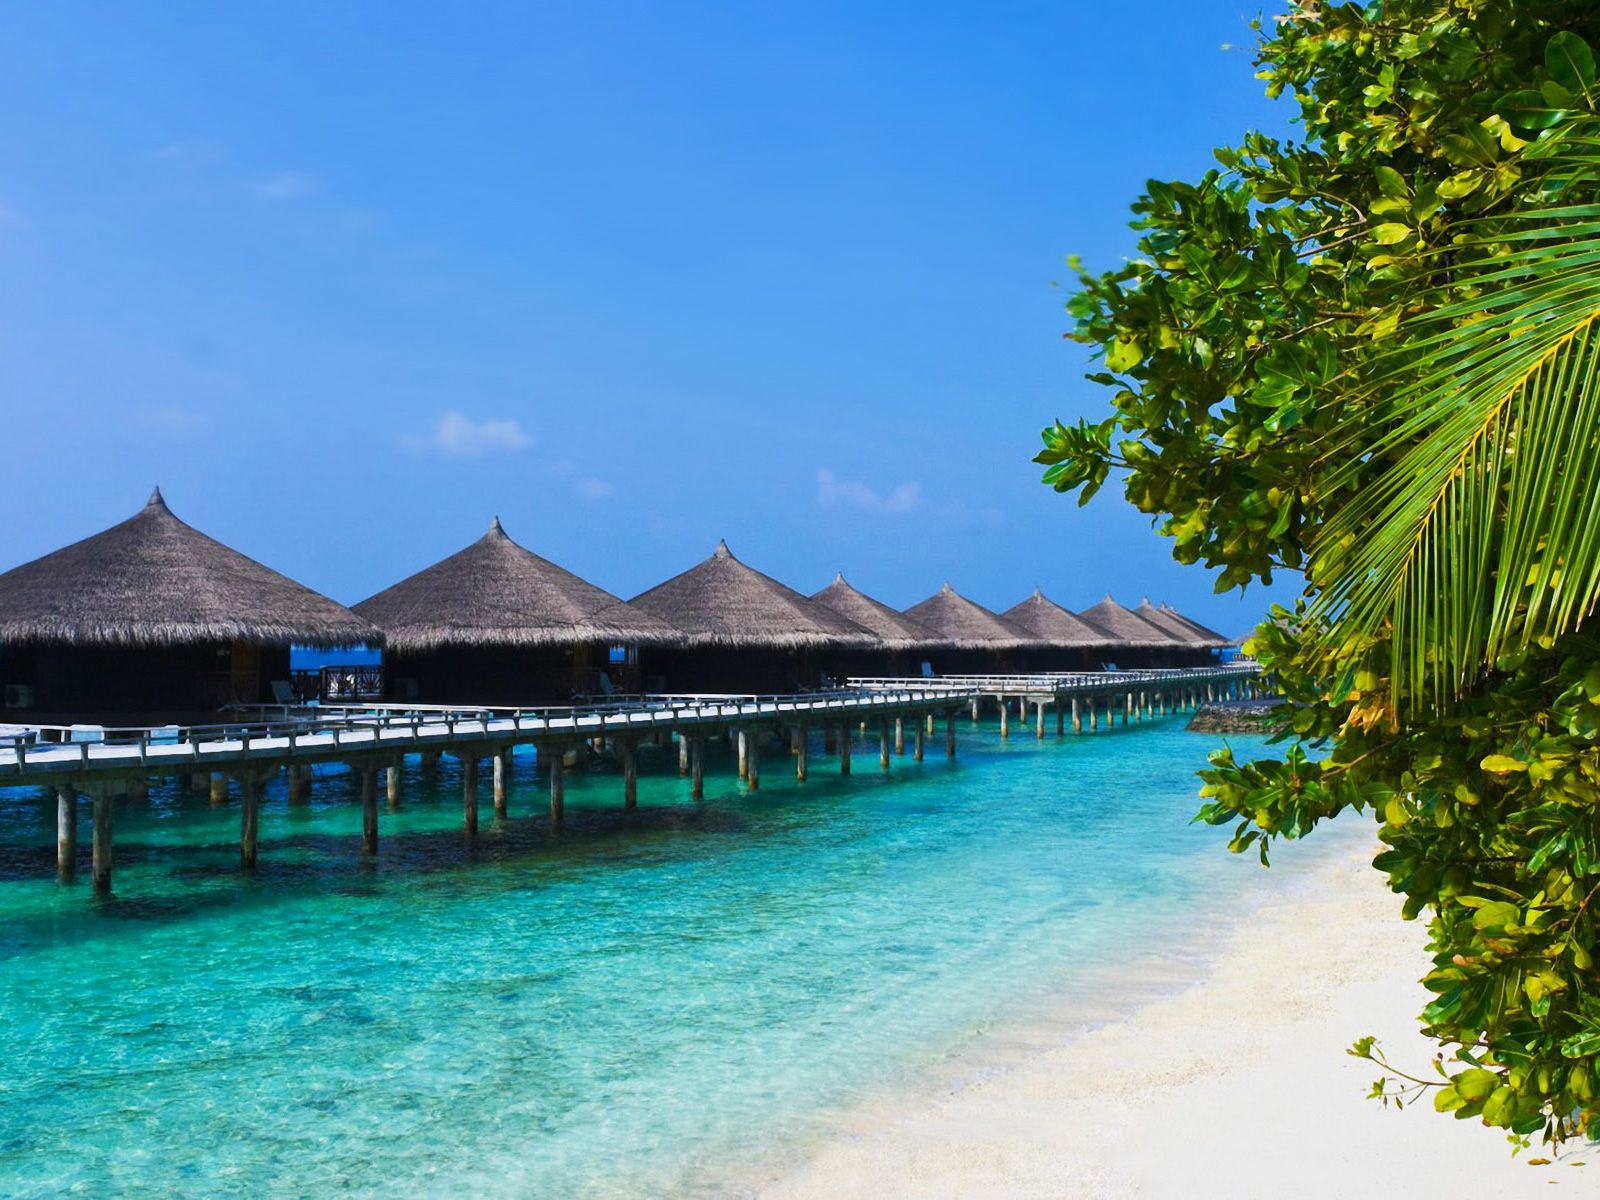 tropical places | tropical places houses beach backgrounds wallpaper